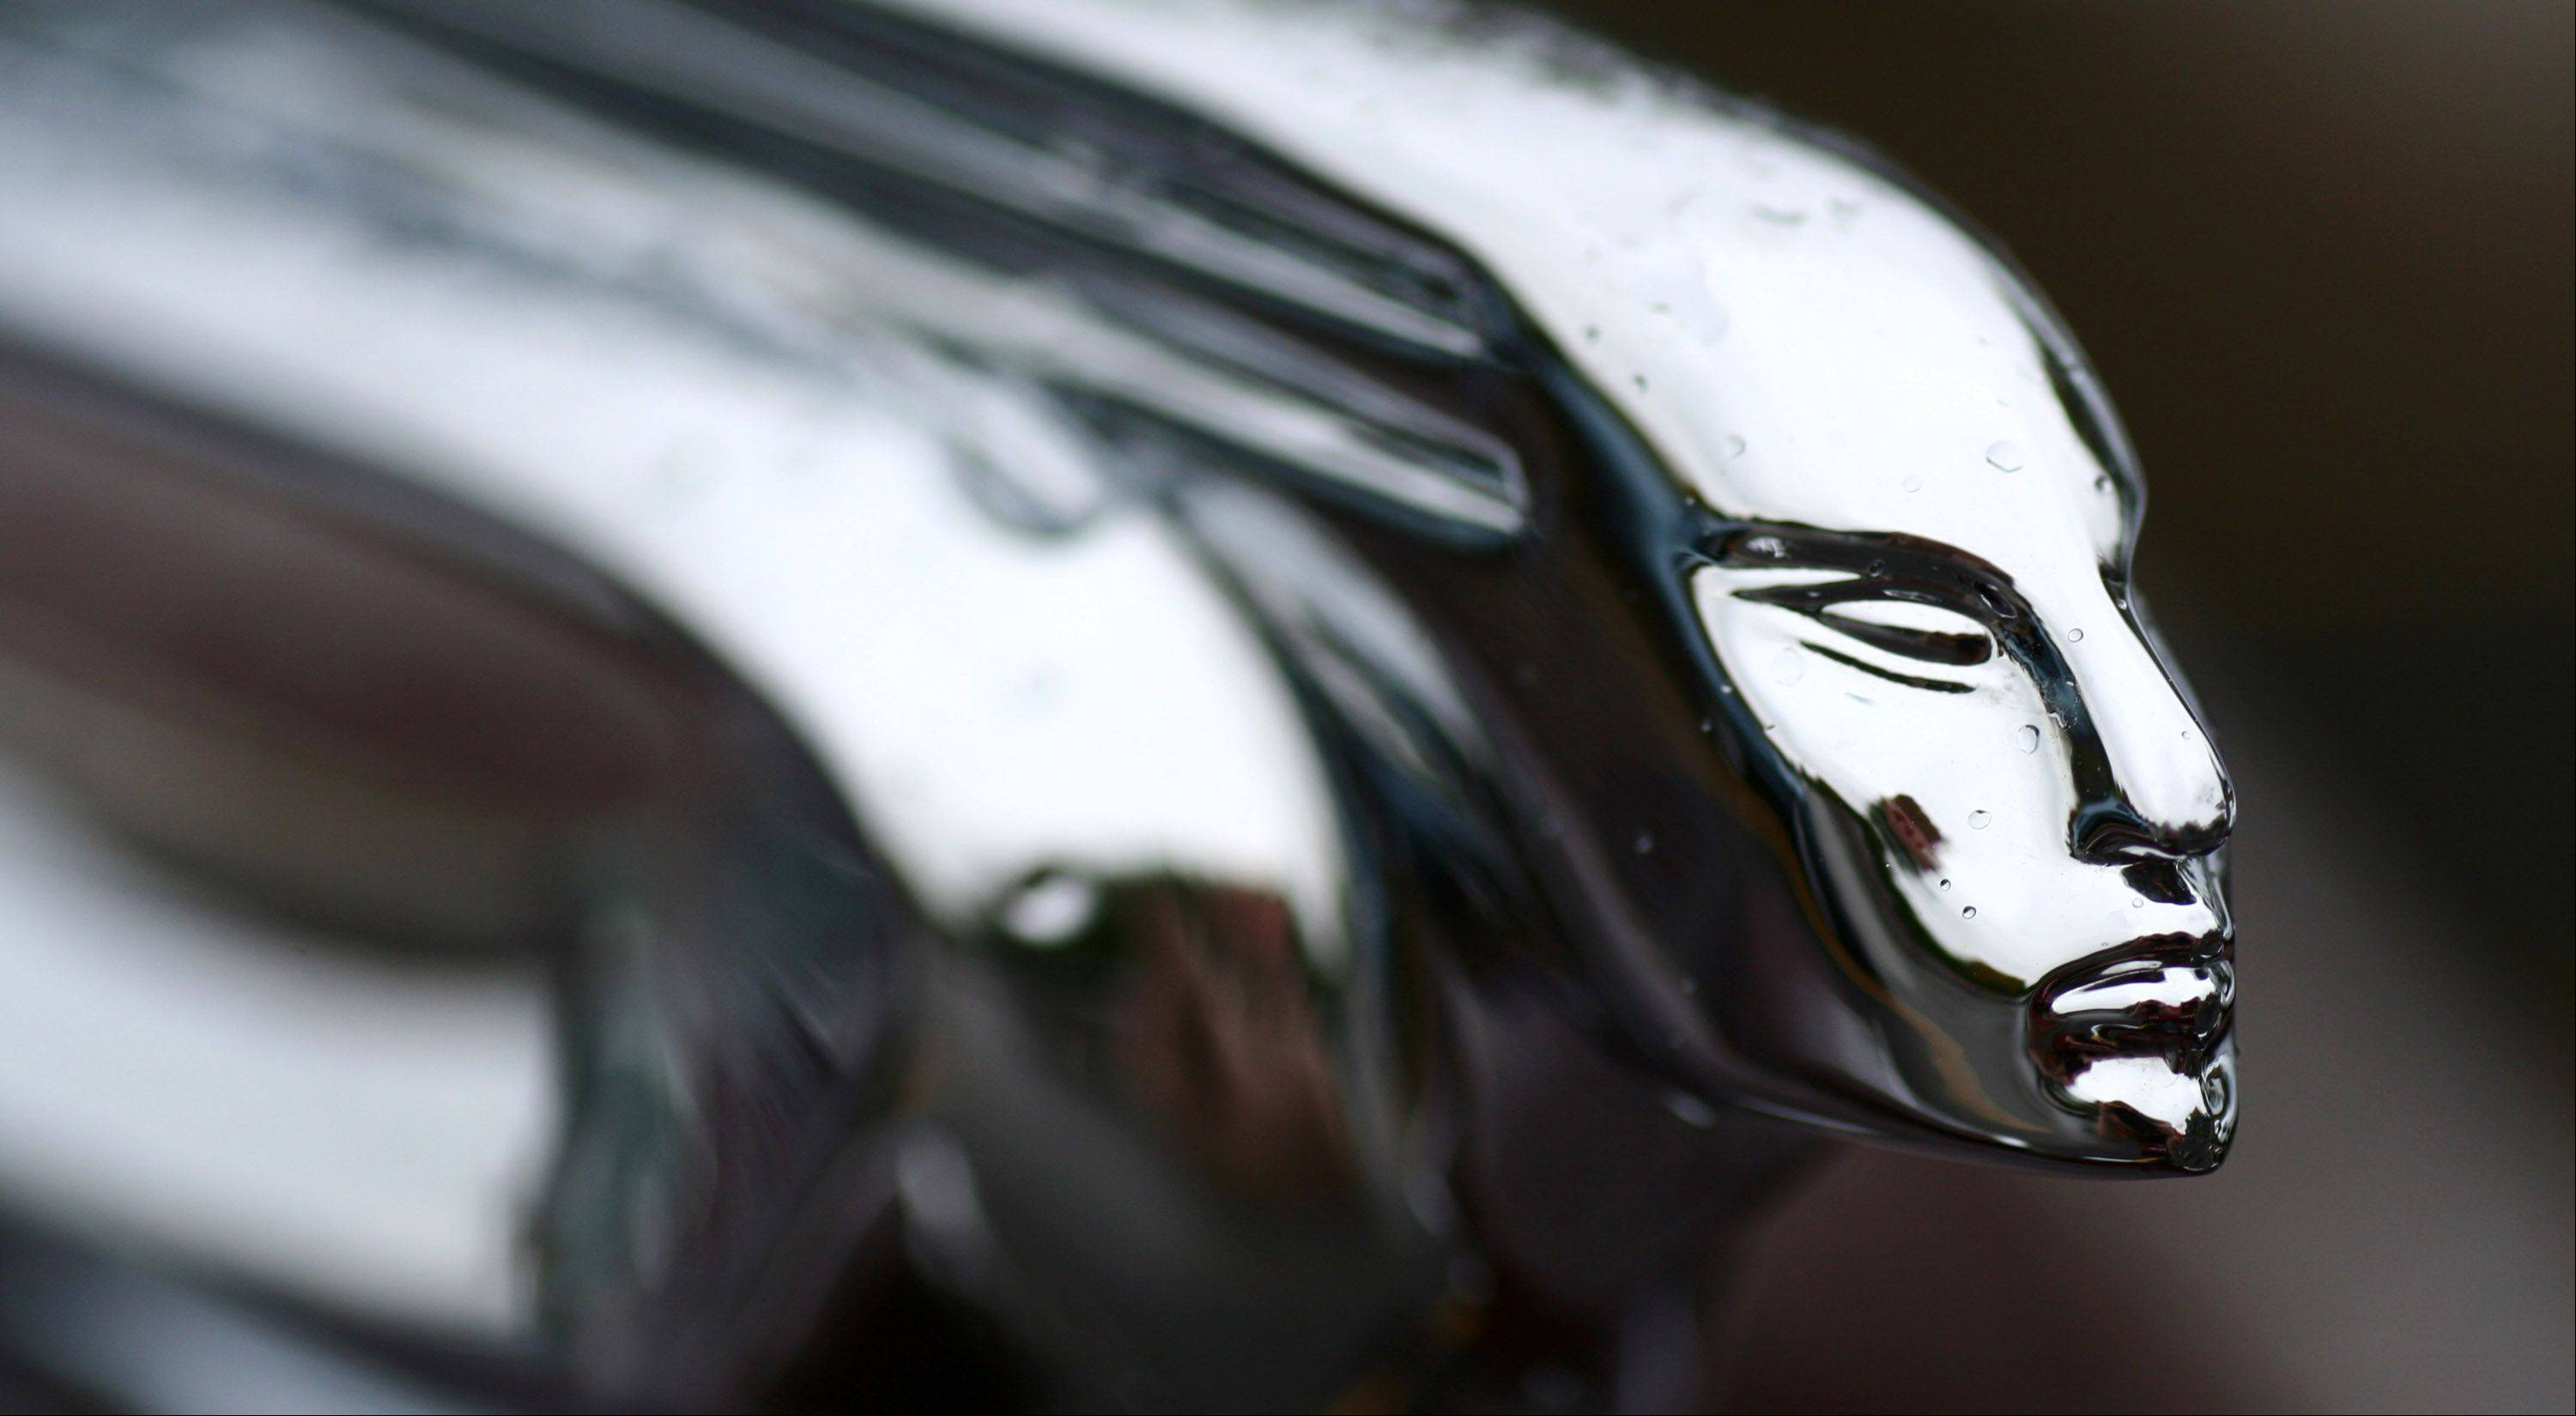 I photographed this vintage hood ornament at Cantigny's annual car show last fall. I used a macro lens to capture the detail of the stains on the metal from the fresh rain drops.